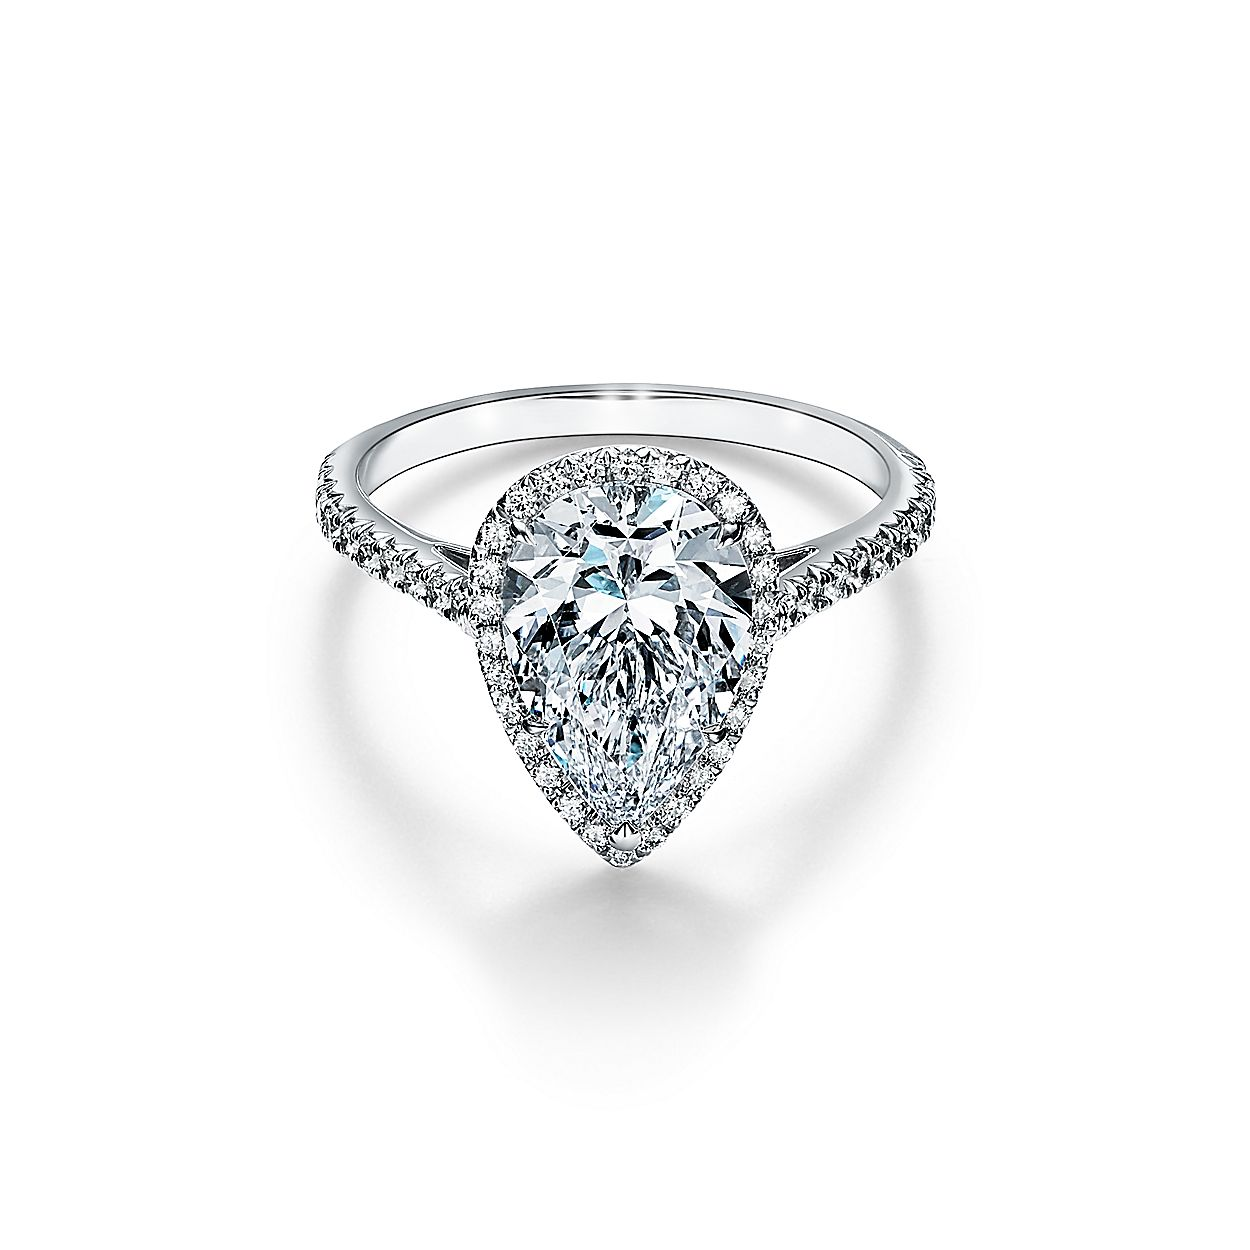 Tiffany Soleste Pear Shaped Halo Engagement Ring With A Diamond Platinum Band